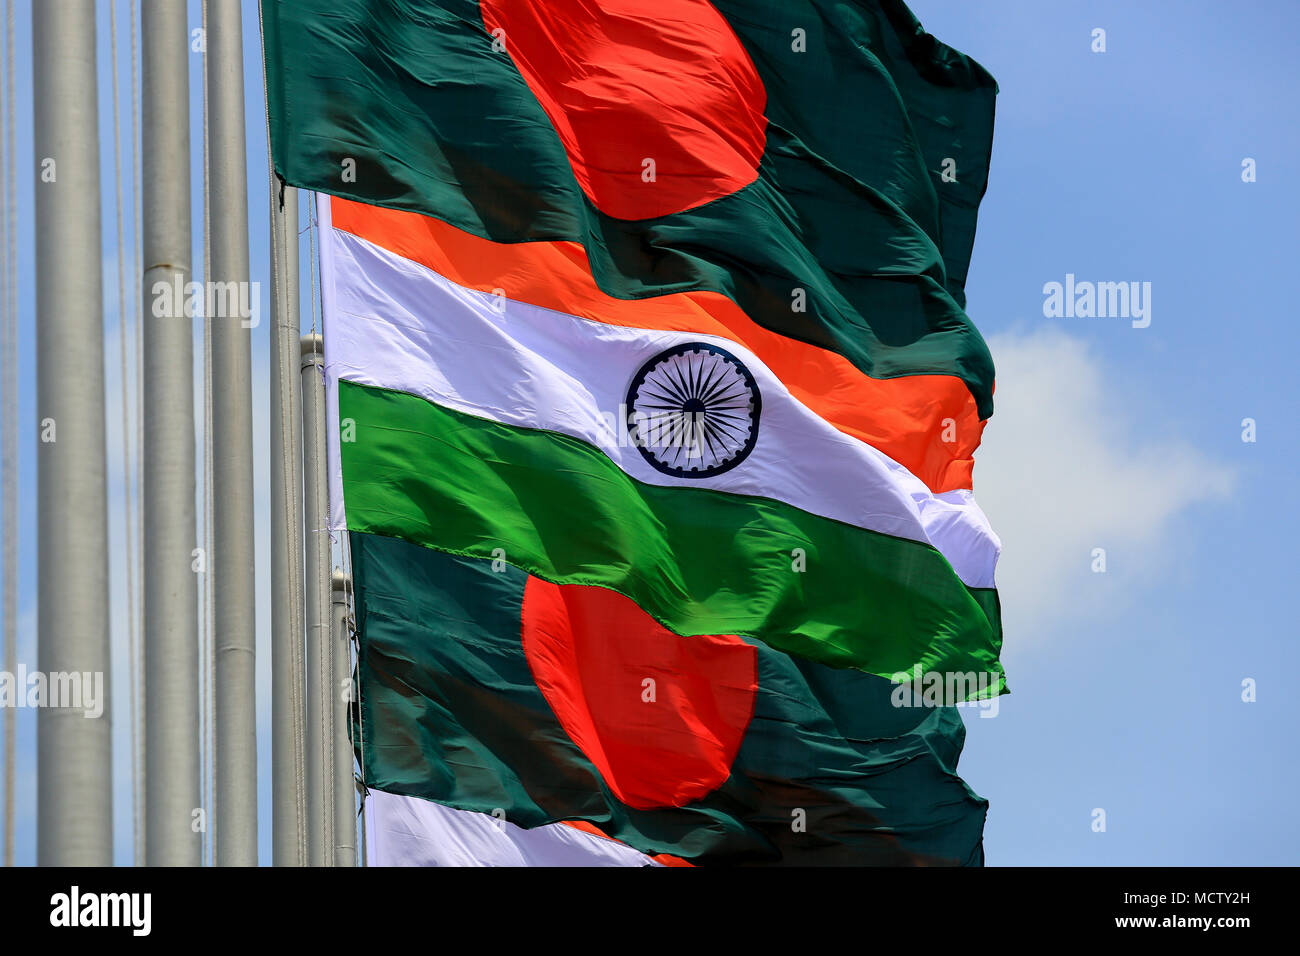 Bangladesh and India flags flutter side by side. - Stock Image